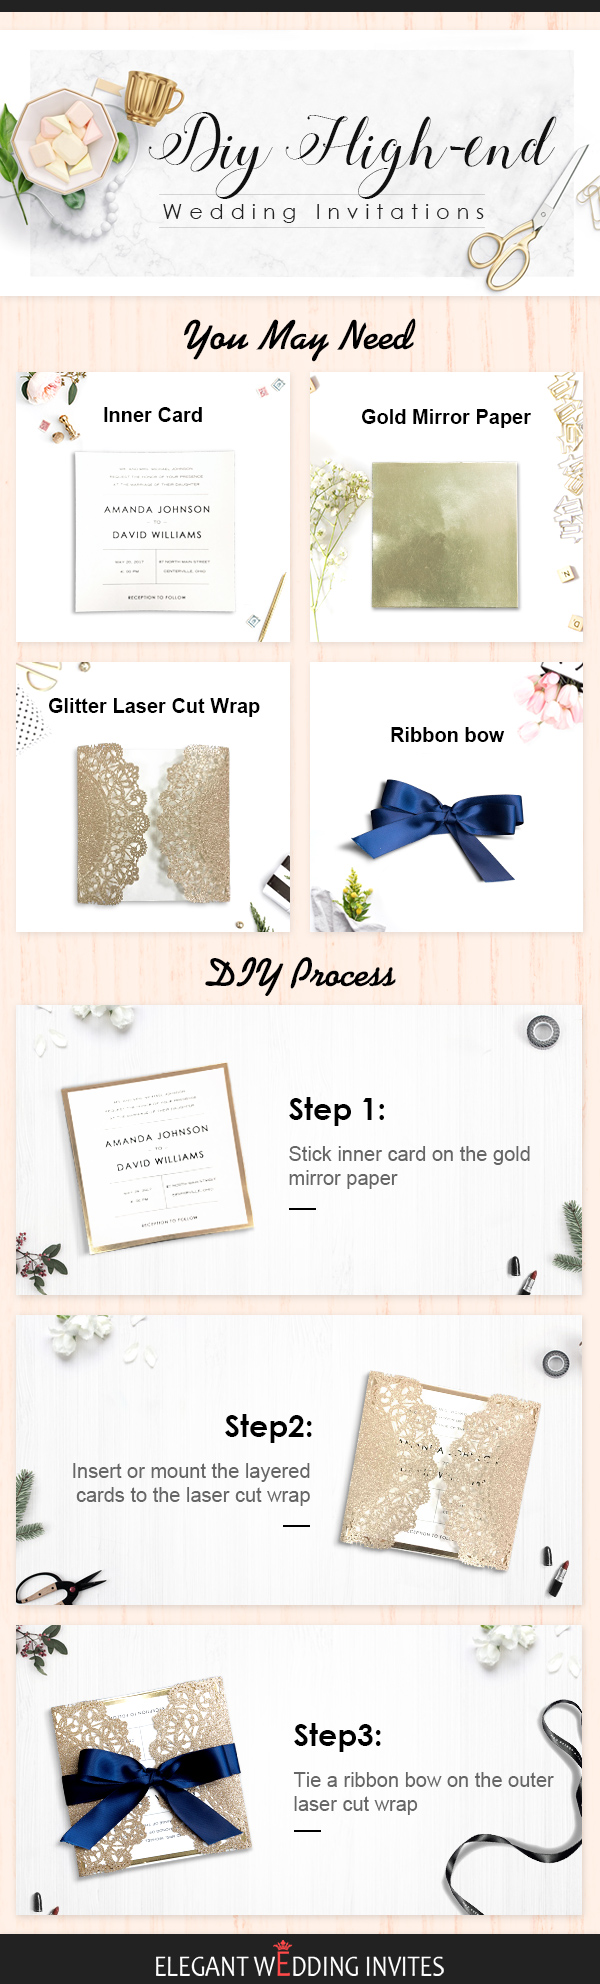 DIY High-end Wedding Invitations